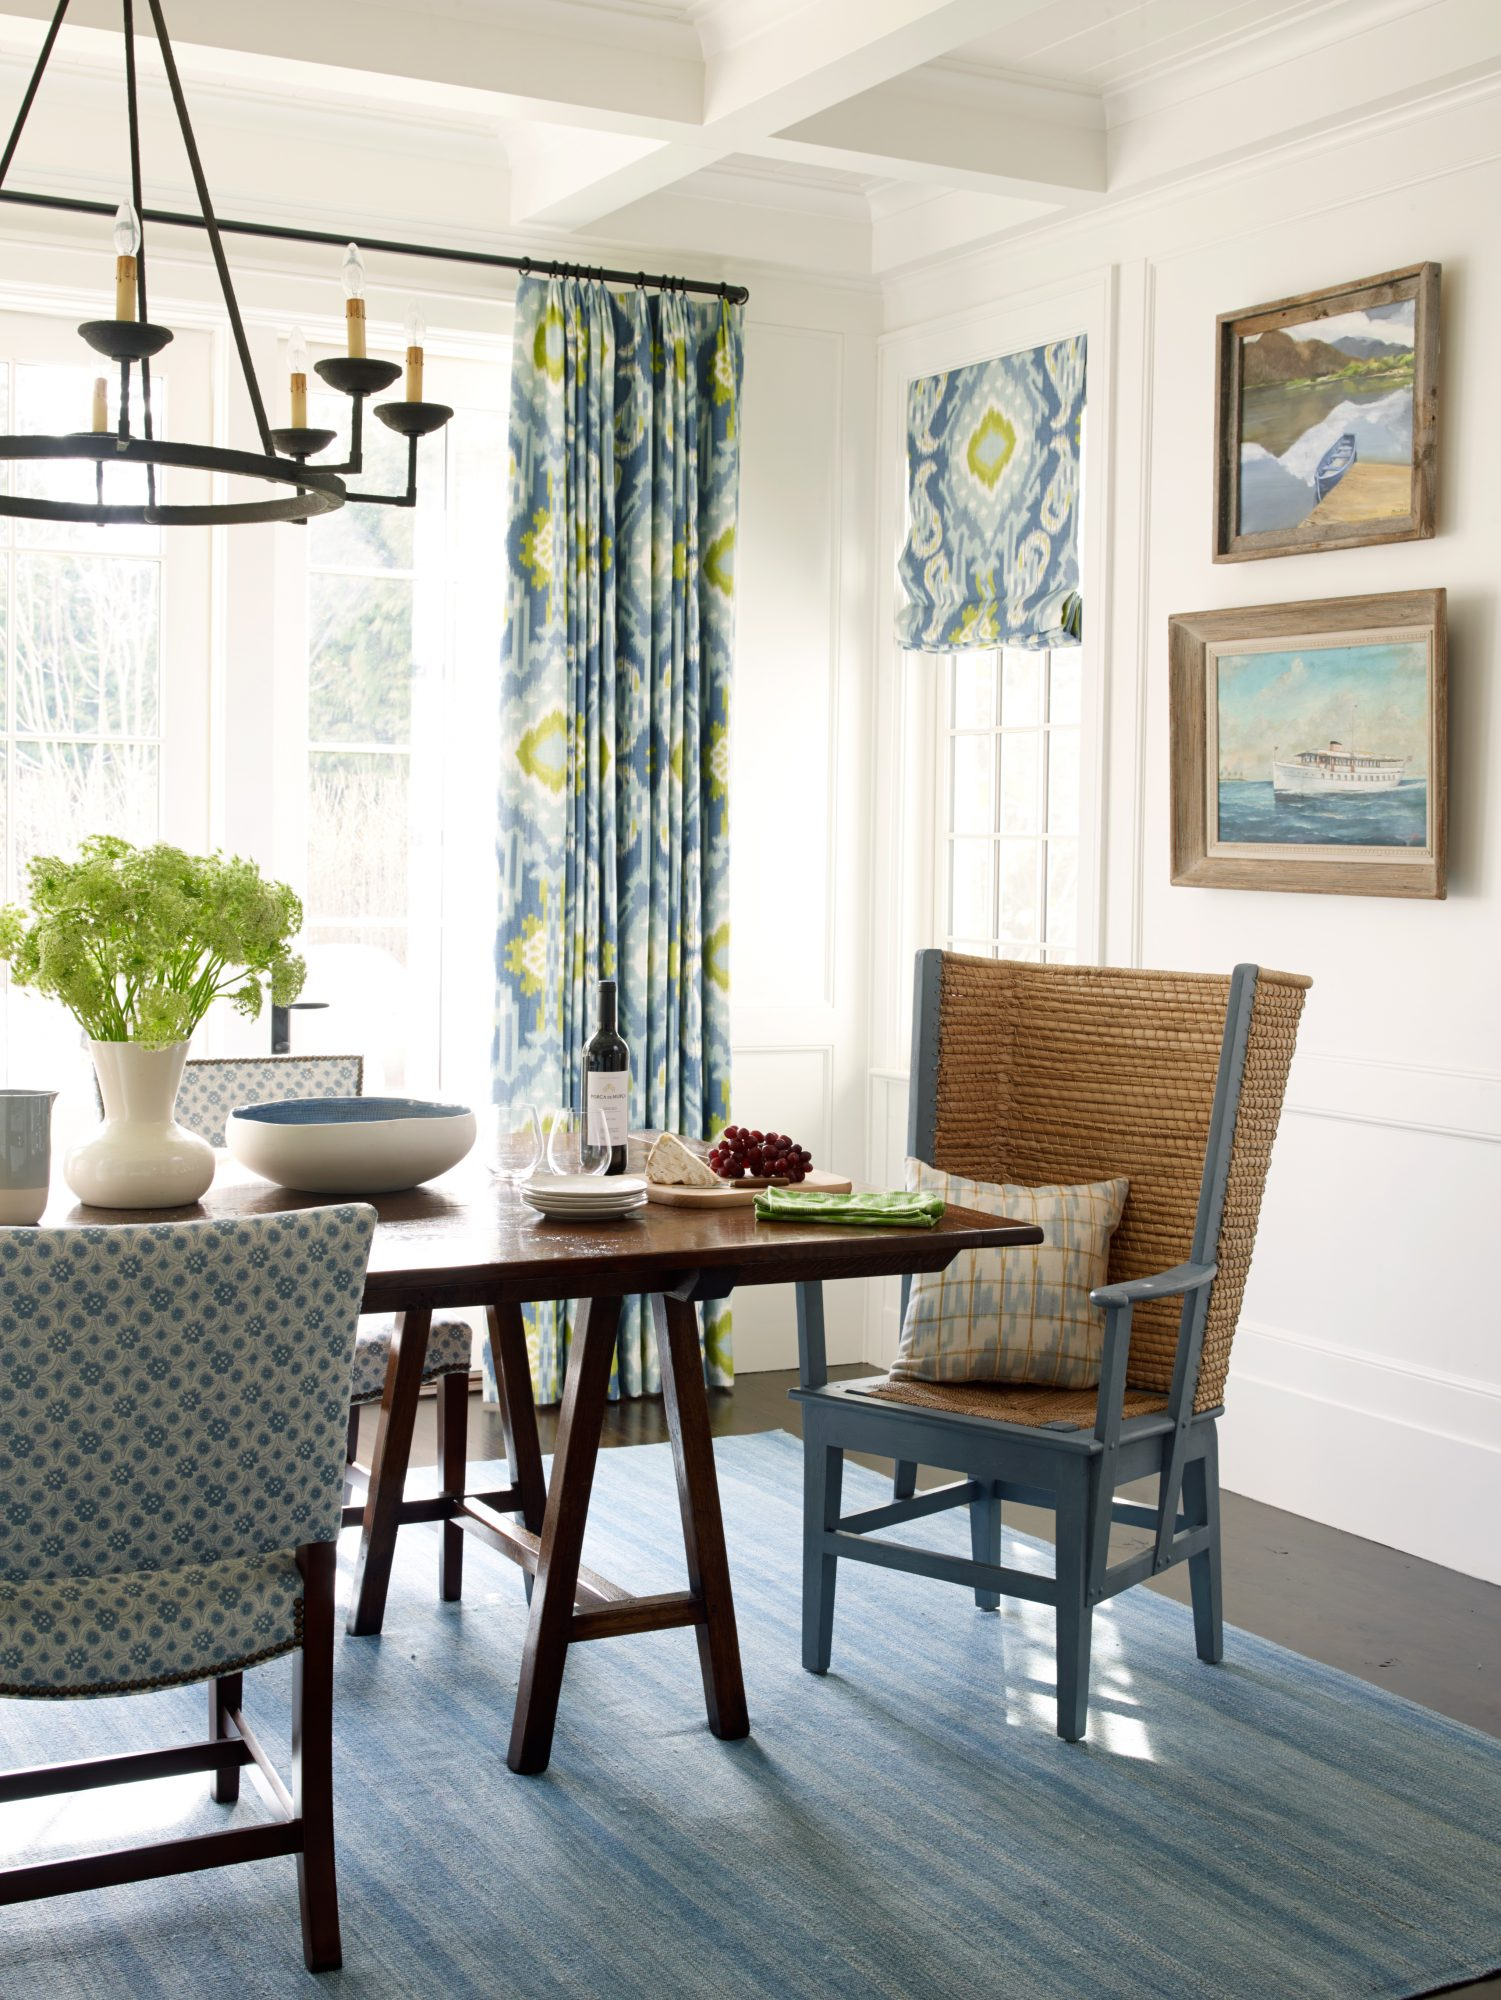 Blue always works in a beach house because it relates well to the ocean. Seascapes, a striped rug, and upholstered side chairs highlight those classic seafaring blues, while the contemporary pattern on the window treatments introduces a complementary zippy green to the mix.                             Idea Spotlight                             Antique-inspired furniture is great for giving a little patina and soul to a space. In this East Hampton dining room, a reproduction sawhorse table with hand-hewn planks and a dusty blue Orkney host chair do the trick.